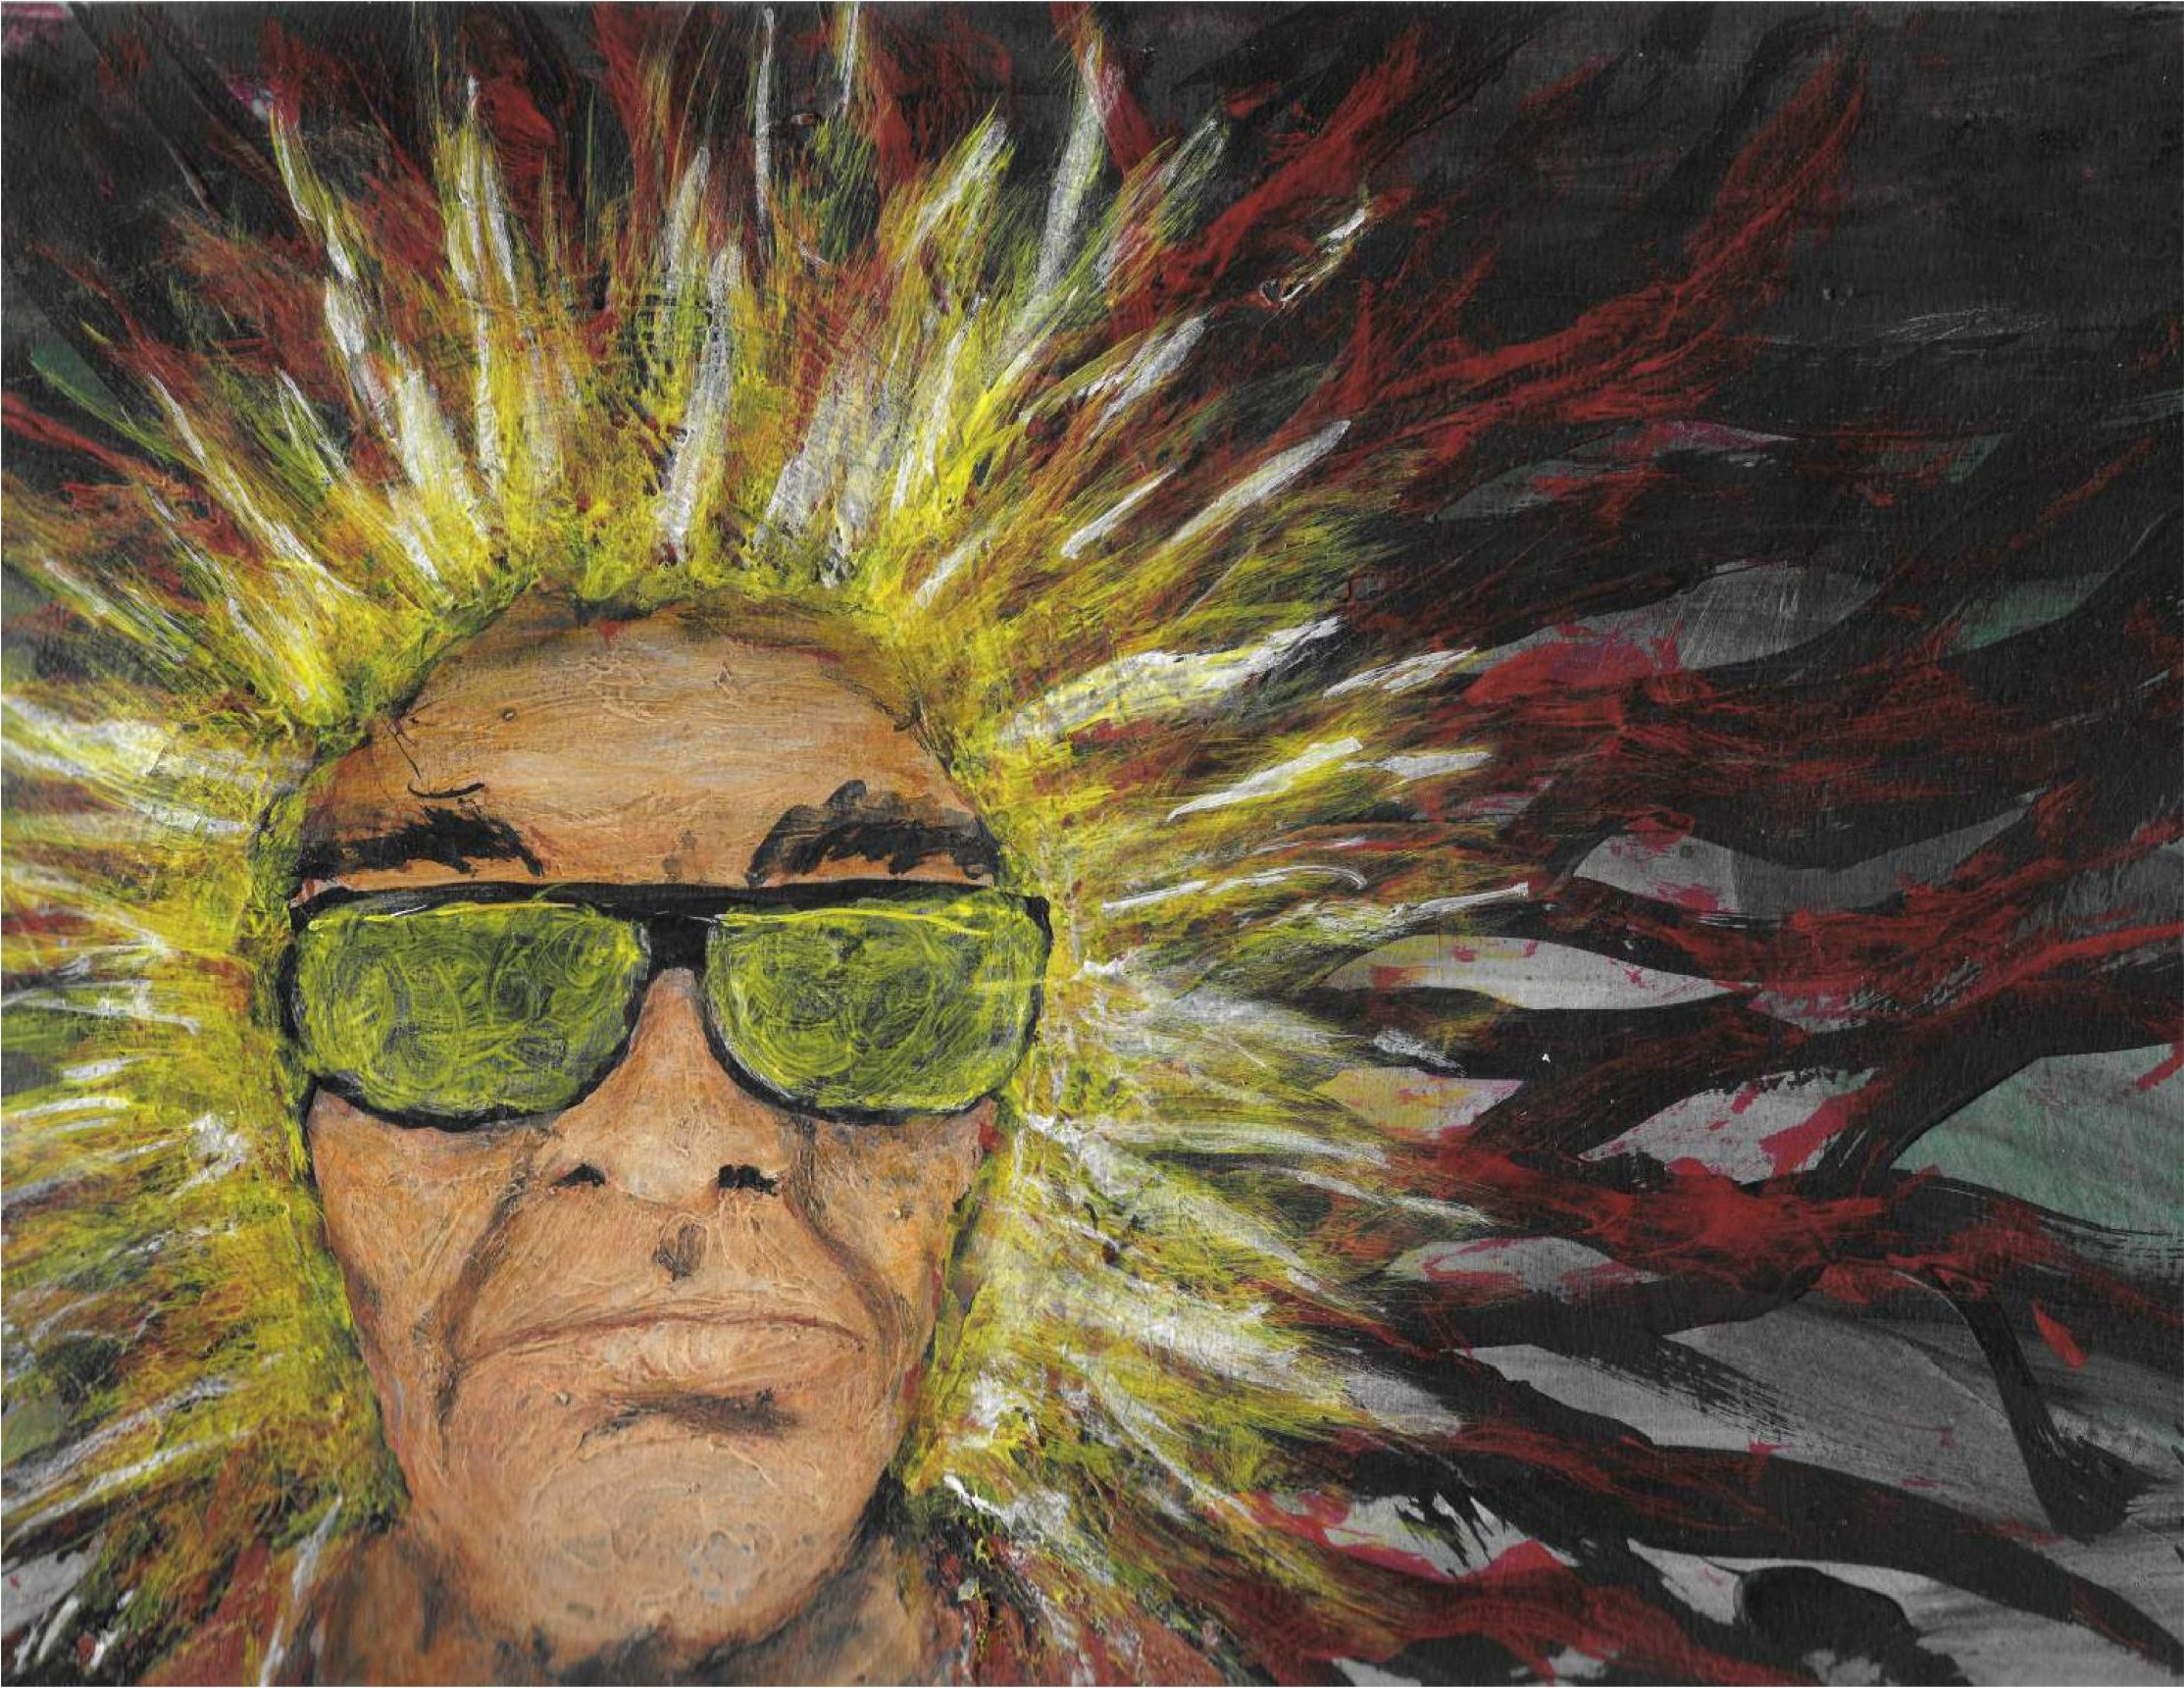 A man in sunglasses has a jagged yellow halo around his head while the rest of the background is overcome by a tangle of black and red lines